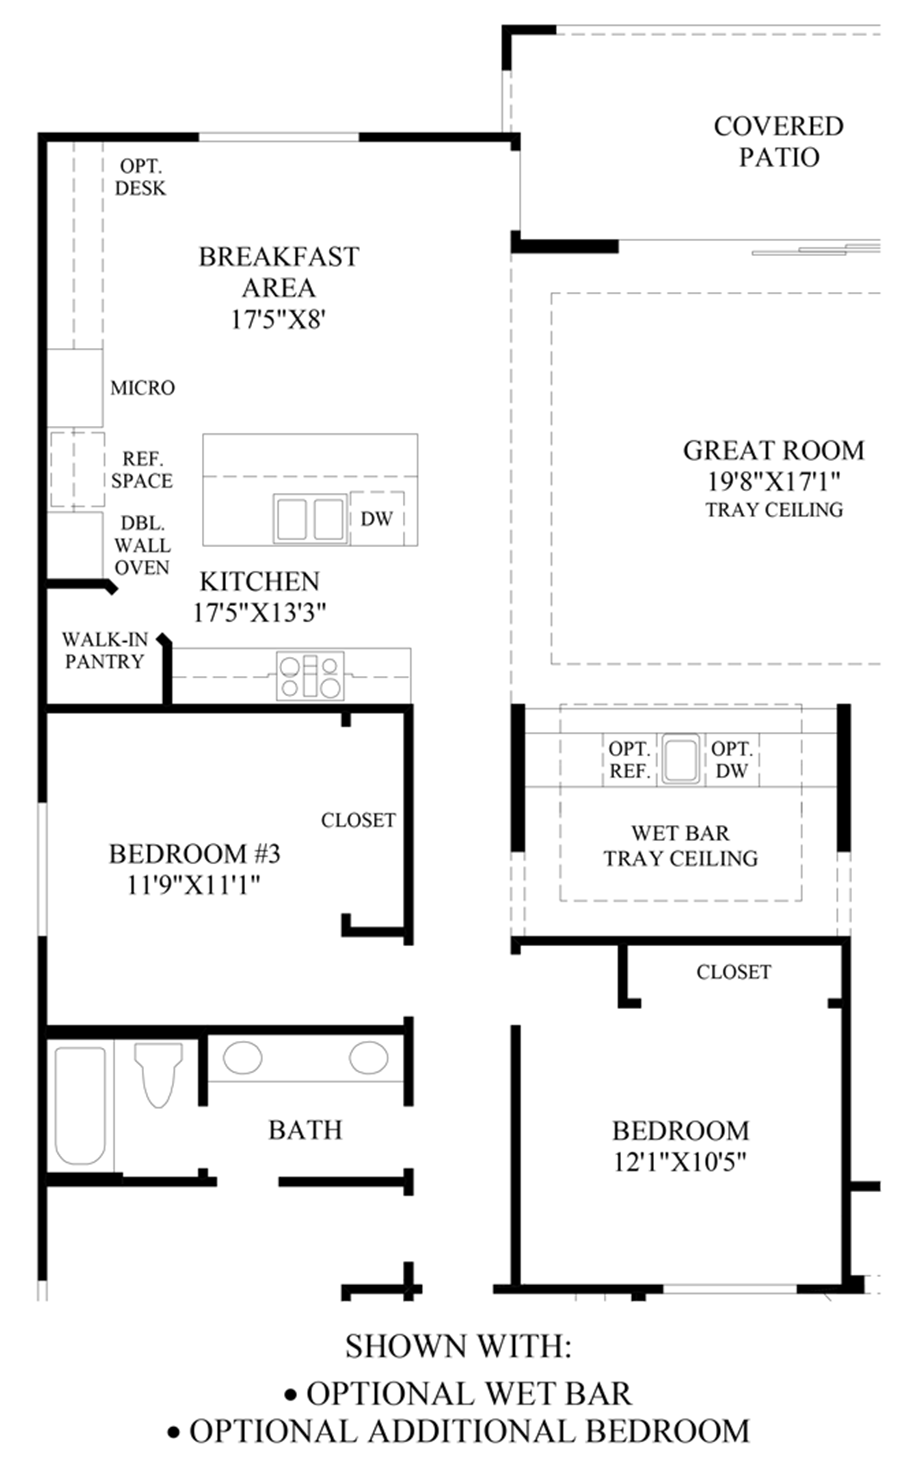 Optional Wet Bar & Additional Bedroom Floor Plan